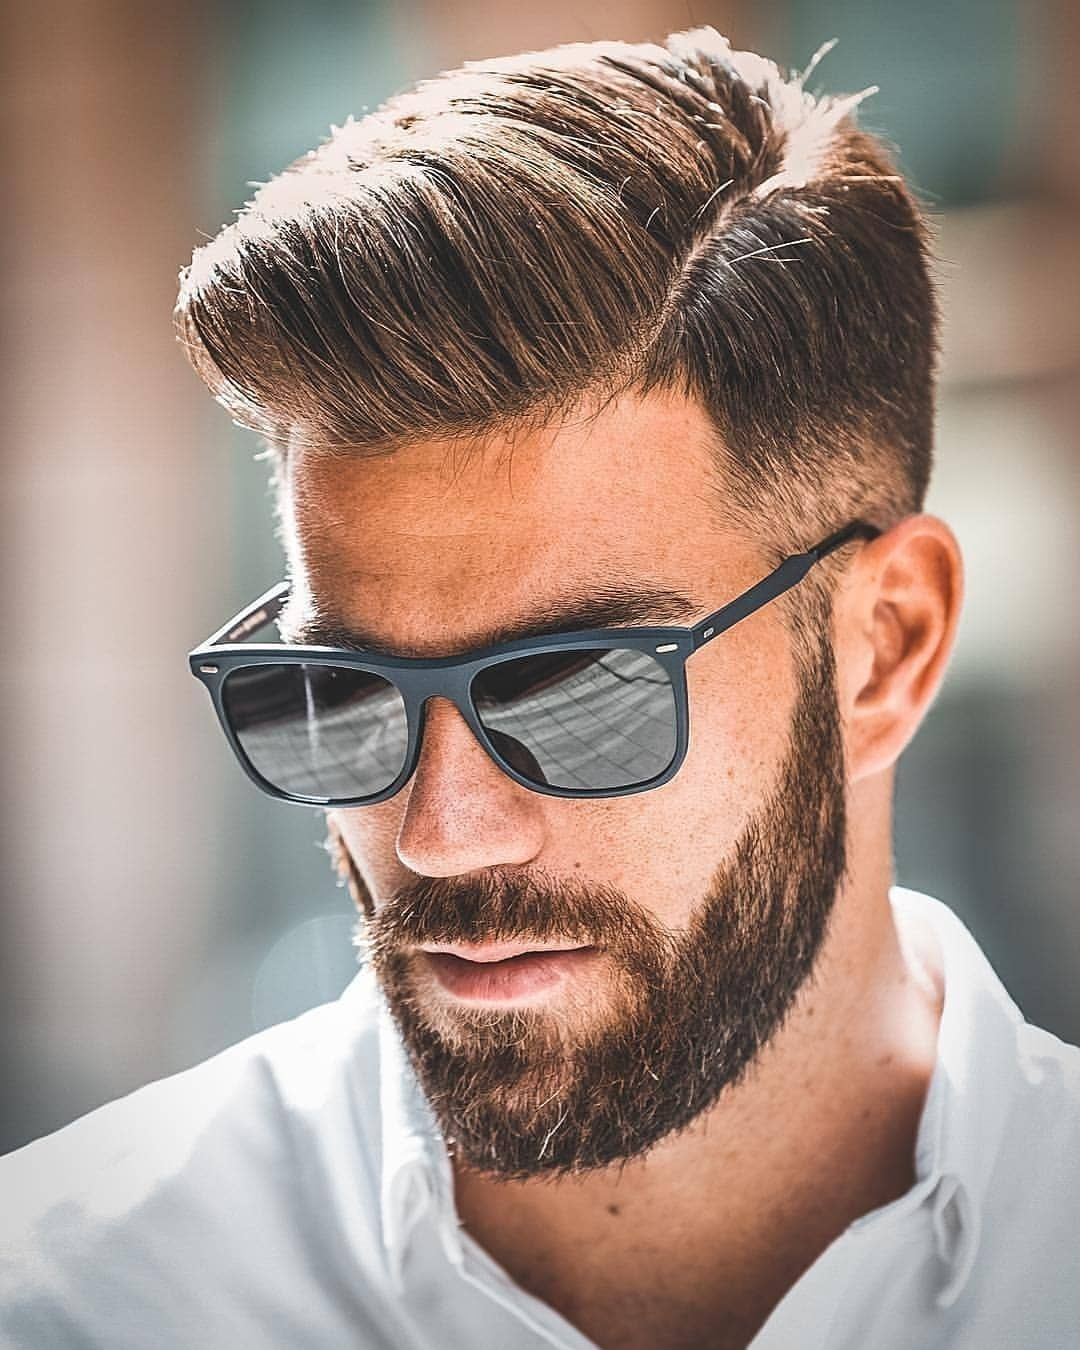 Stupendous 49 Amazing Beards And Hairstyles For Modern Men Mens Hairstyles Schematic Wiring Diagrams Amerangerunnerswayorg